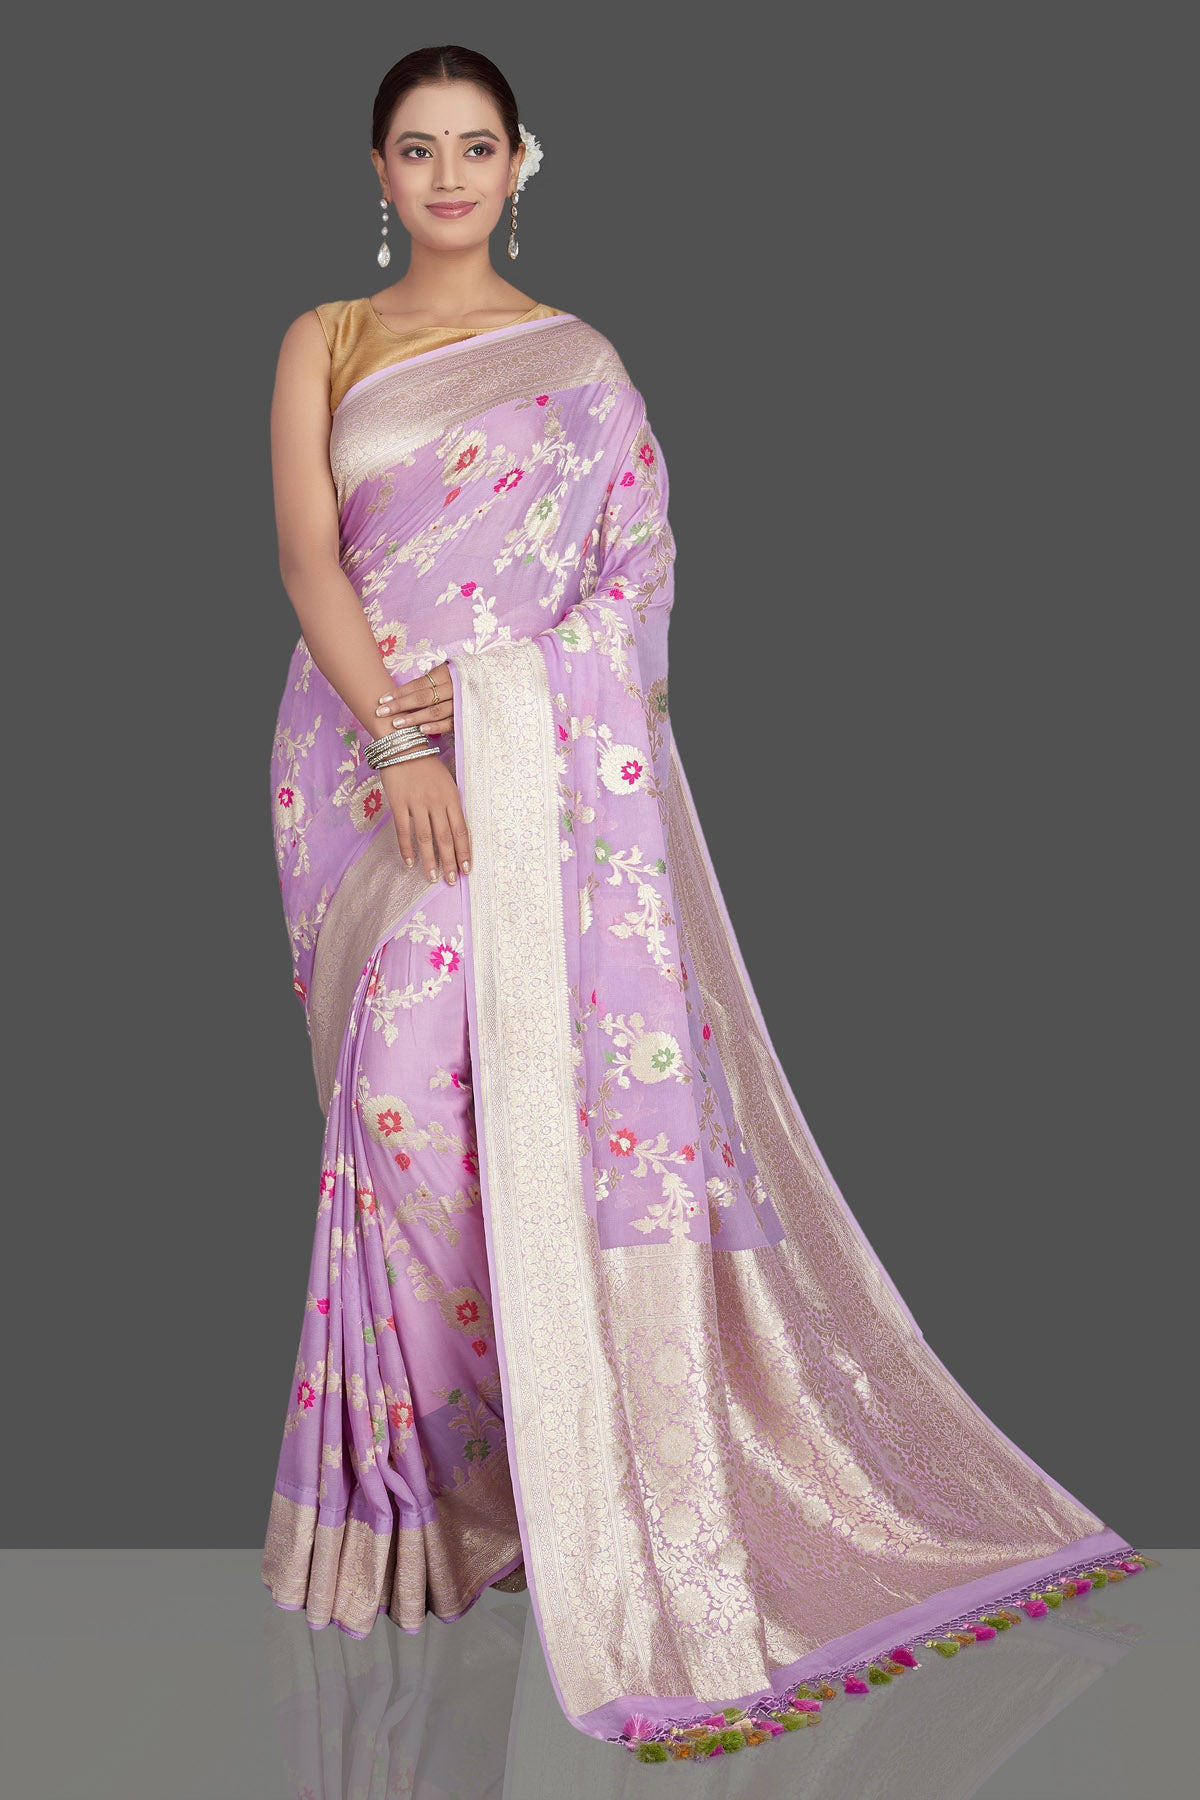 Shop beautiful lavender georgette sari online in USA with silver zari floral jaal. Make an impeccable ethnic fashion statement on festive occasions with traditional Indian sarees, pure silk sarees, designer sarees, handwoven saris, Banarasi sarees from Pure Elegance Indian saree store in USA.-full view